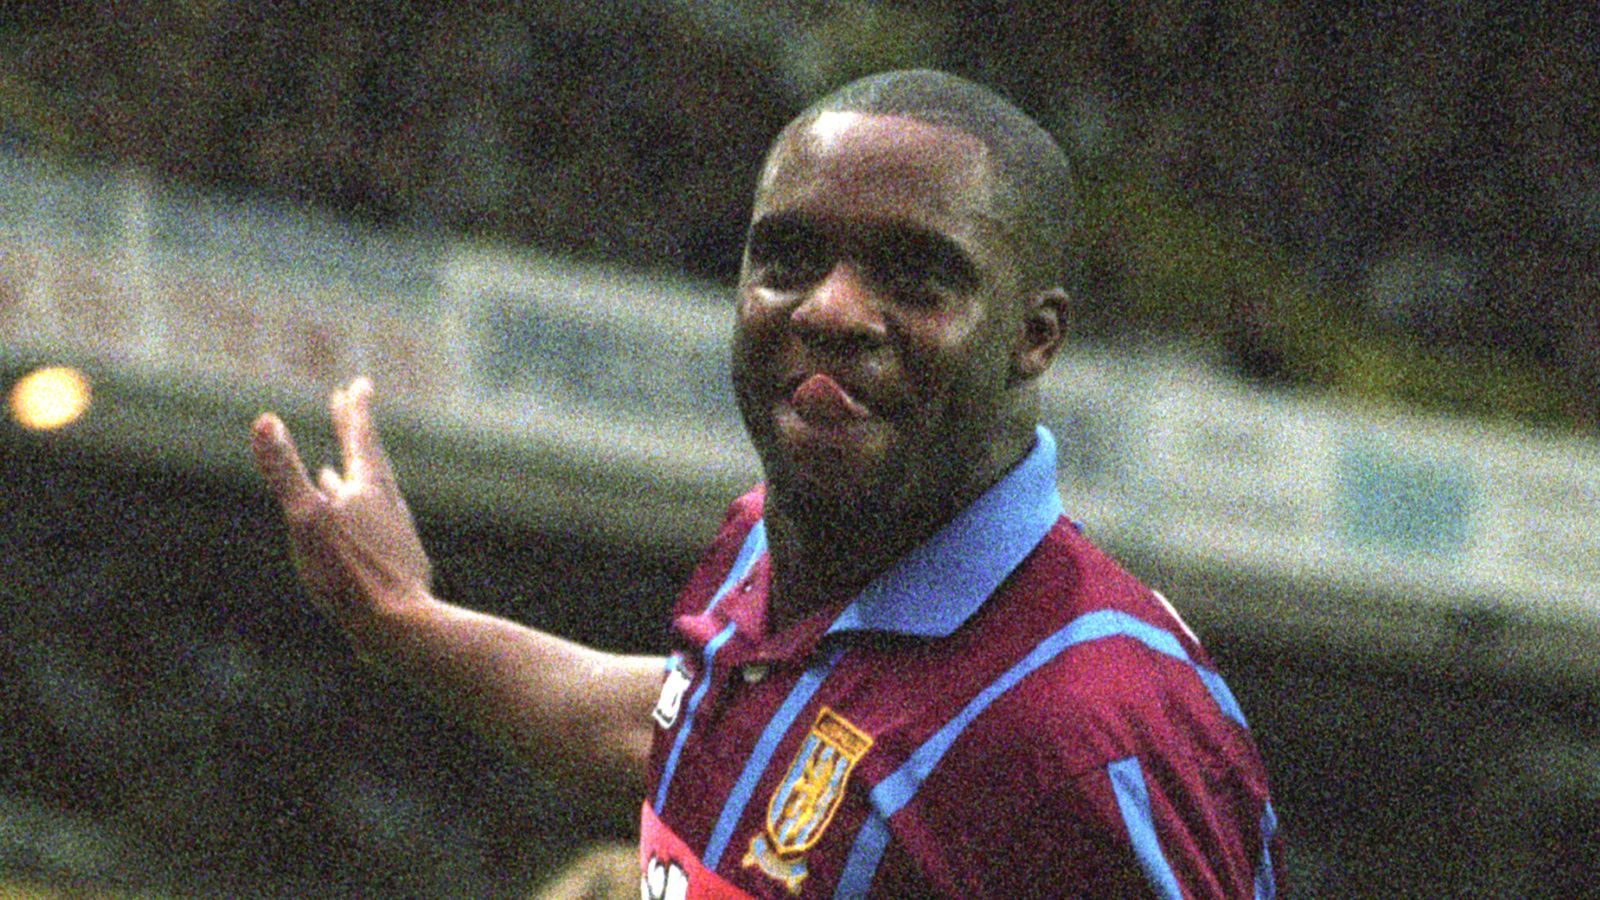 Dalian Atkinson: PC accused of murdering former footballer had foot 'gently resting' on Atkinson's head, court told